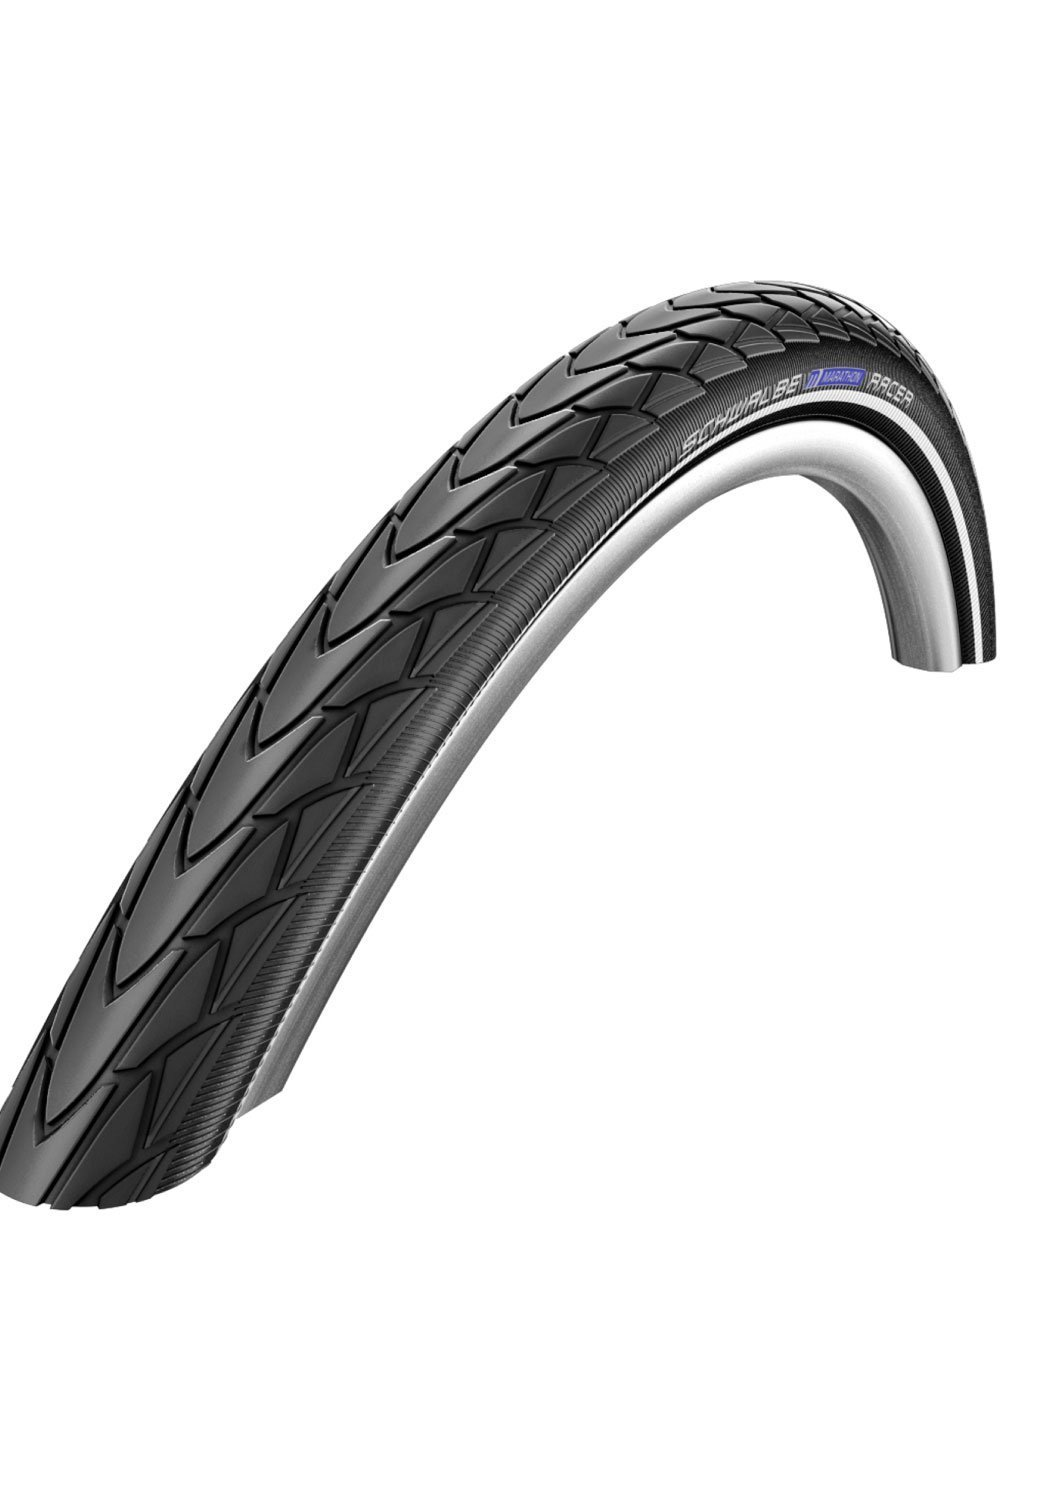 Schwalbe Marathon Racer HS 366 Road Bike Tire (18x1.5 SpeedGrip Wire Beaded Reflex) [並行輸入品] B077QG2V93